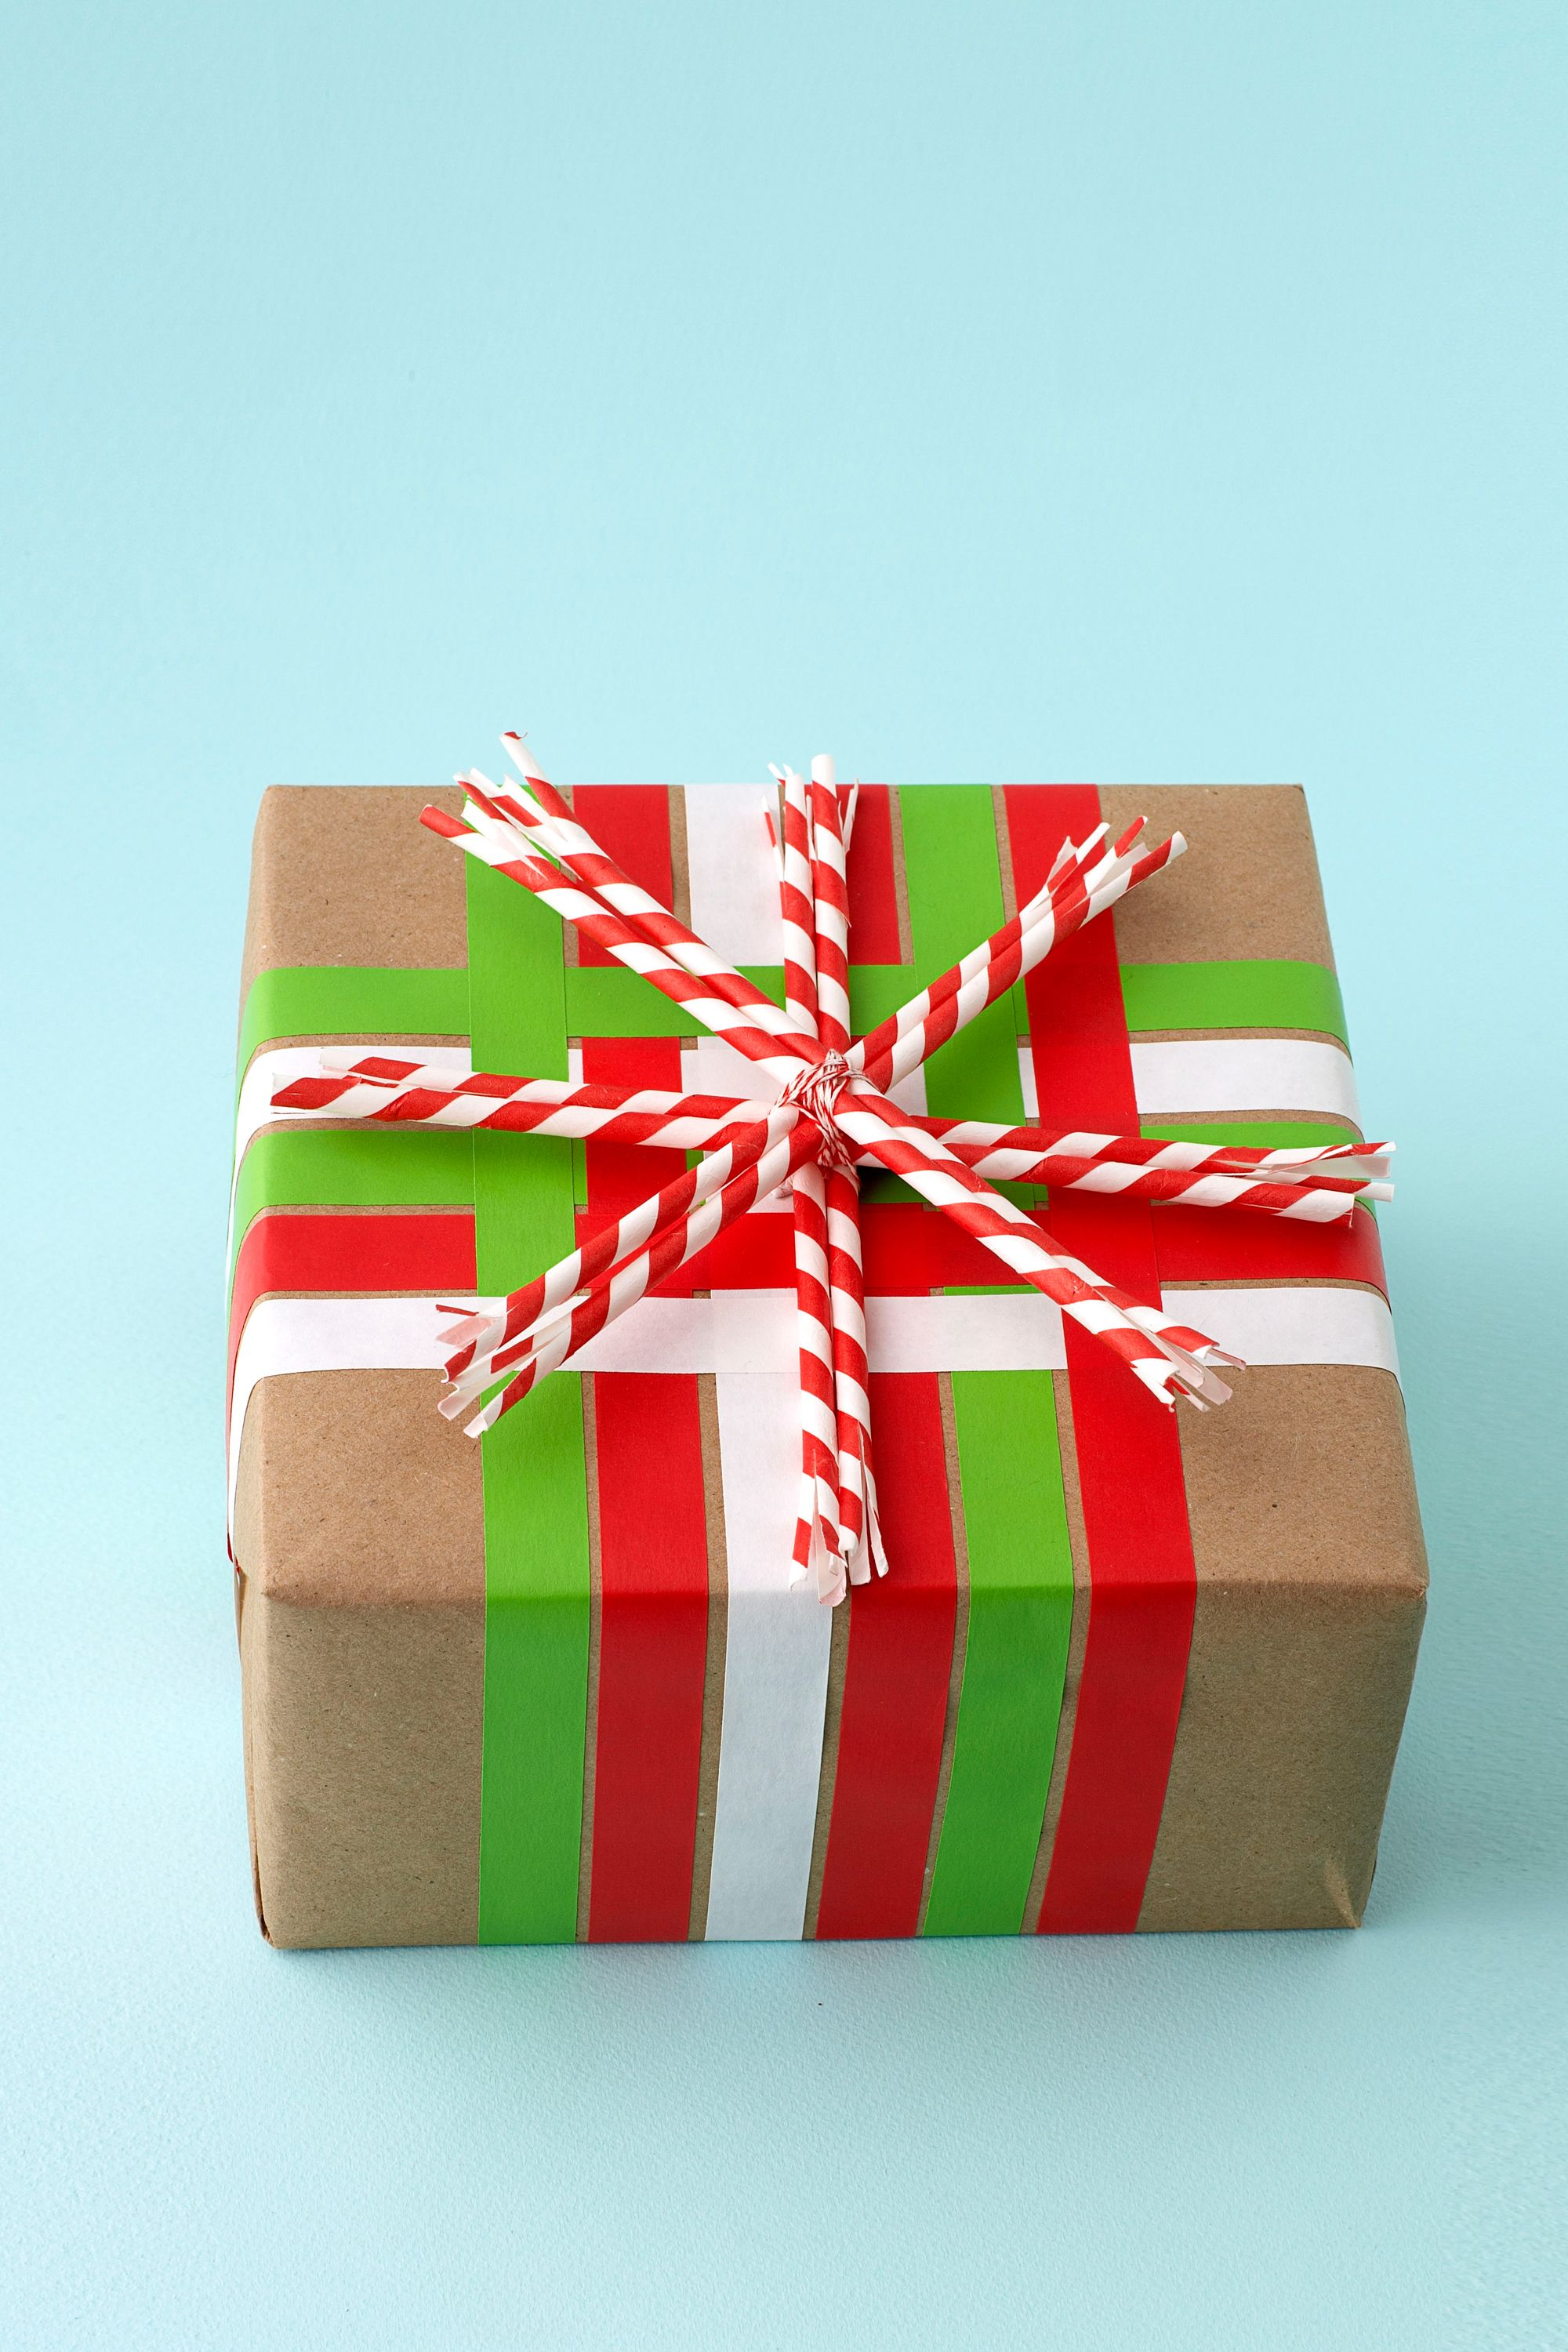 30+ Great Christmas Gift-Wrapping Ideas   Creative gift wrapping ...